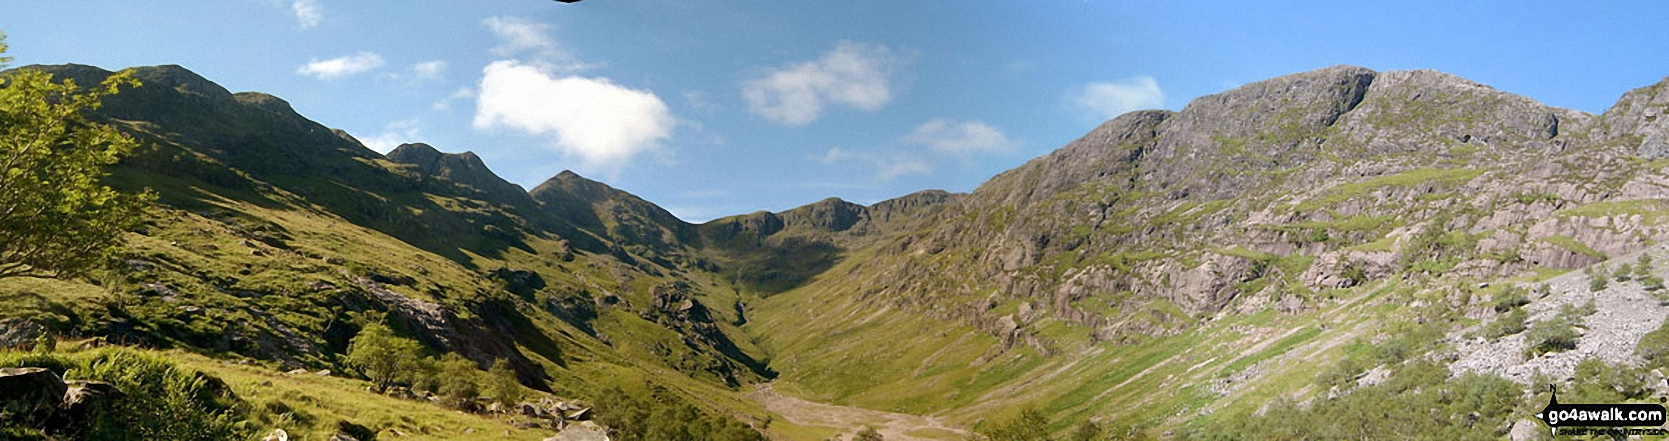 *Beinn Fhada (Stob Coire Sgreamhach) (left), Stob Coire Sgreamhach (centre left), Bidean Nam Bian (centre right) and Gearr Aonach (right) from Coire Gabhail (The 'Lost Valley' of Glen Coe)